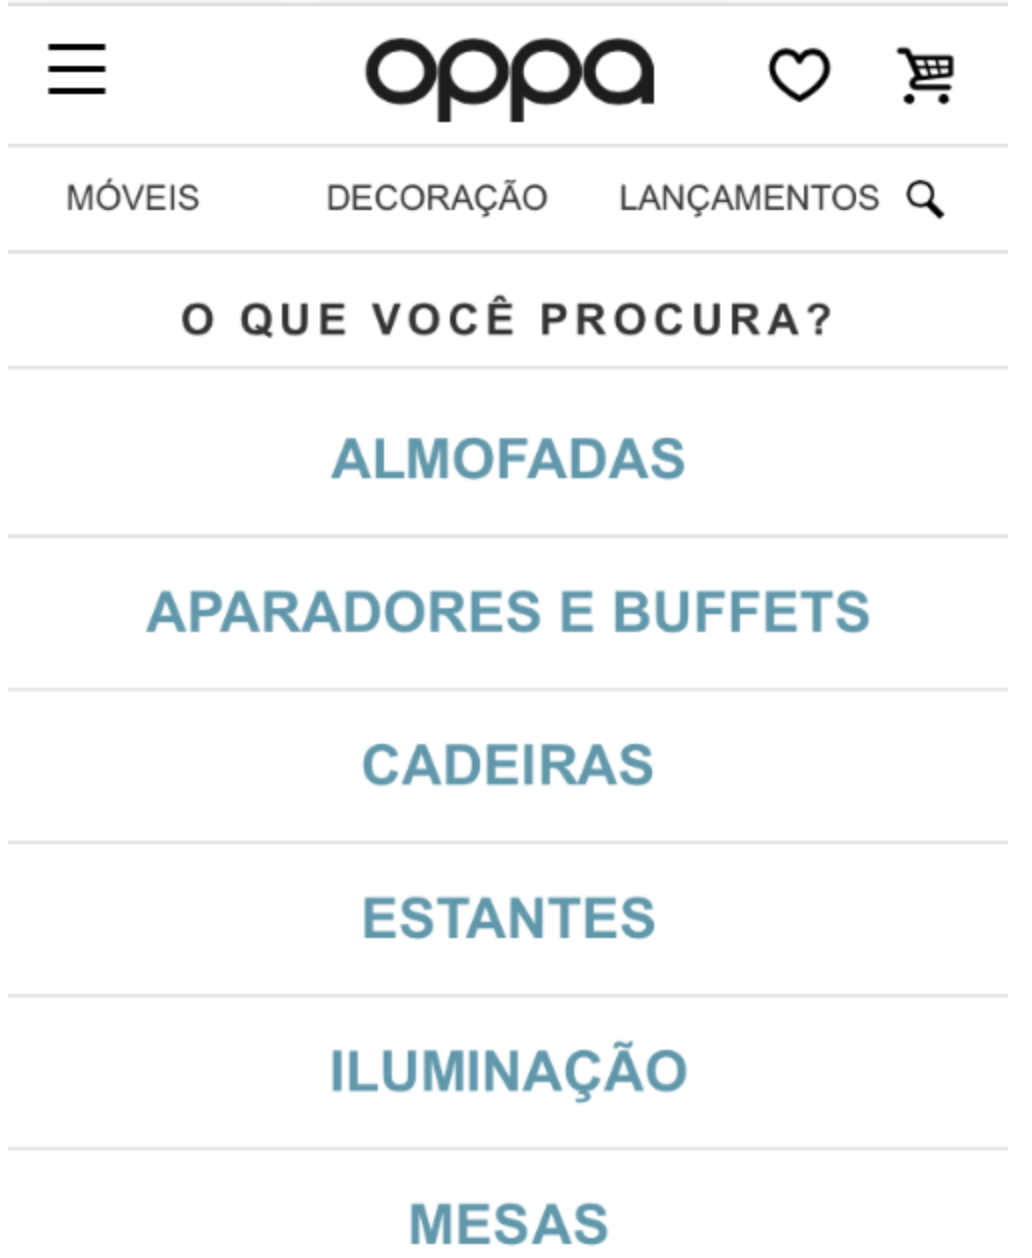 categorias dentro do site de compras Oppa